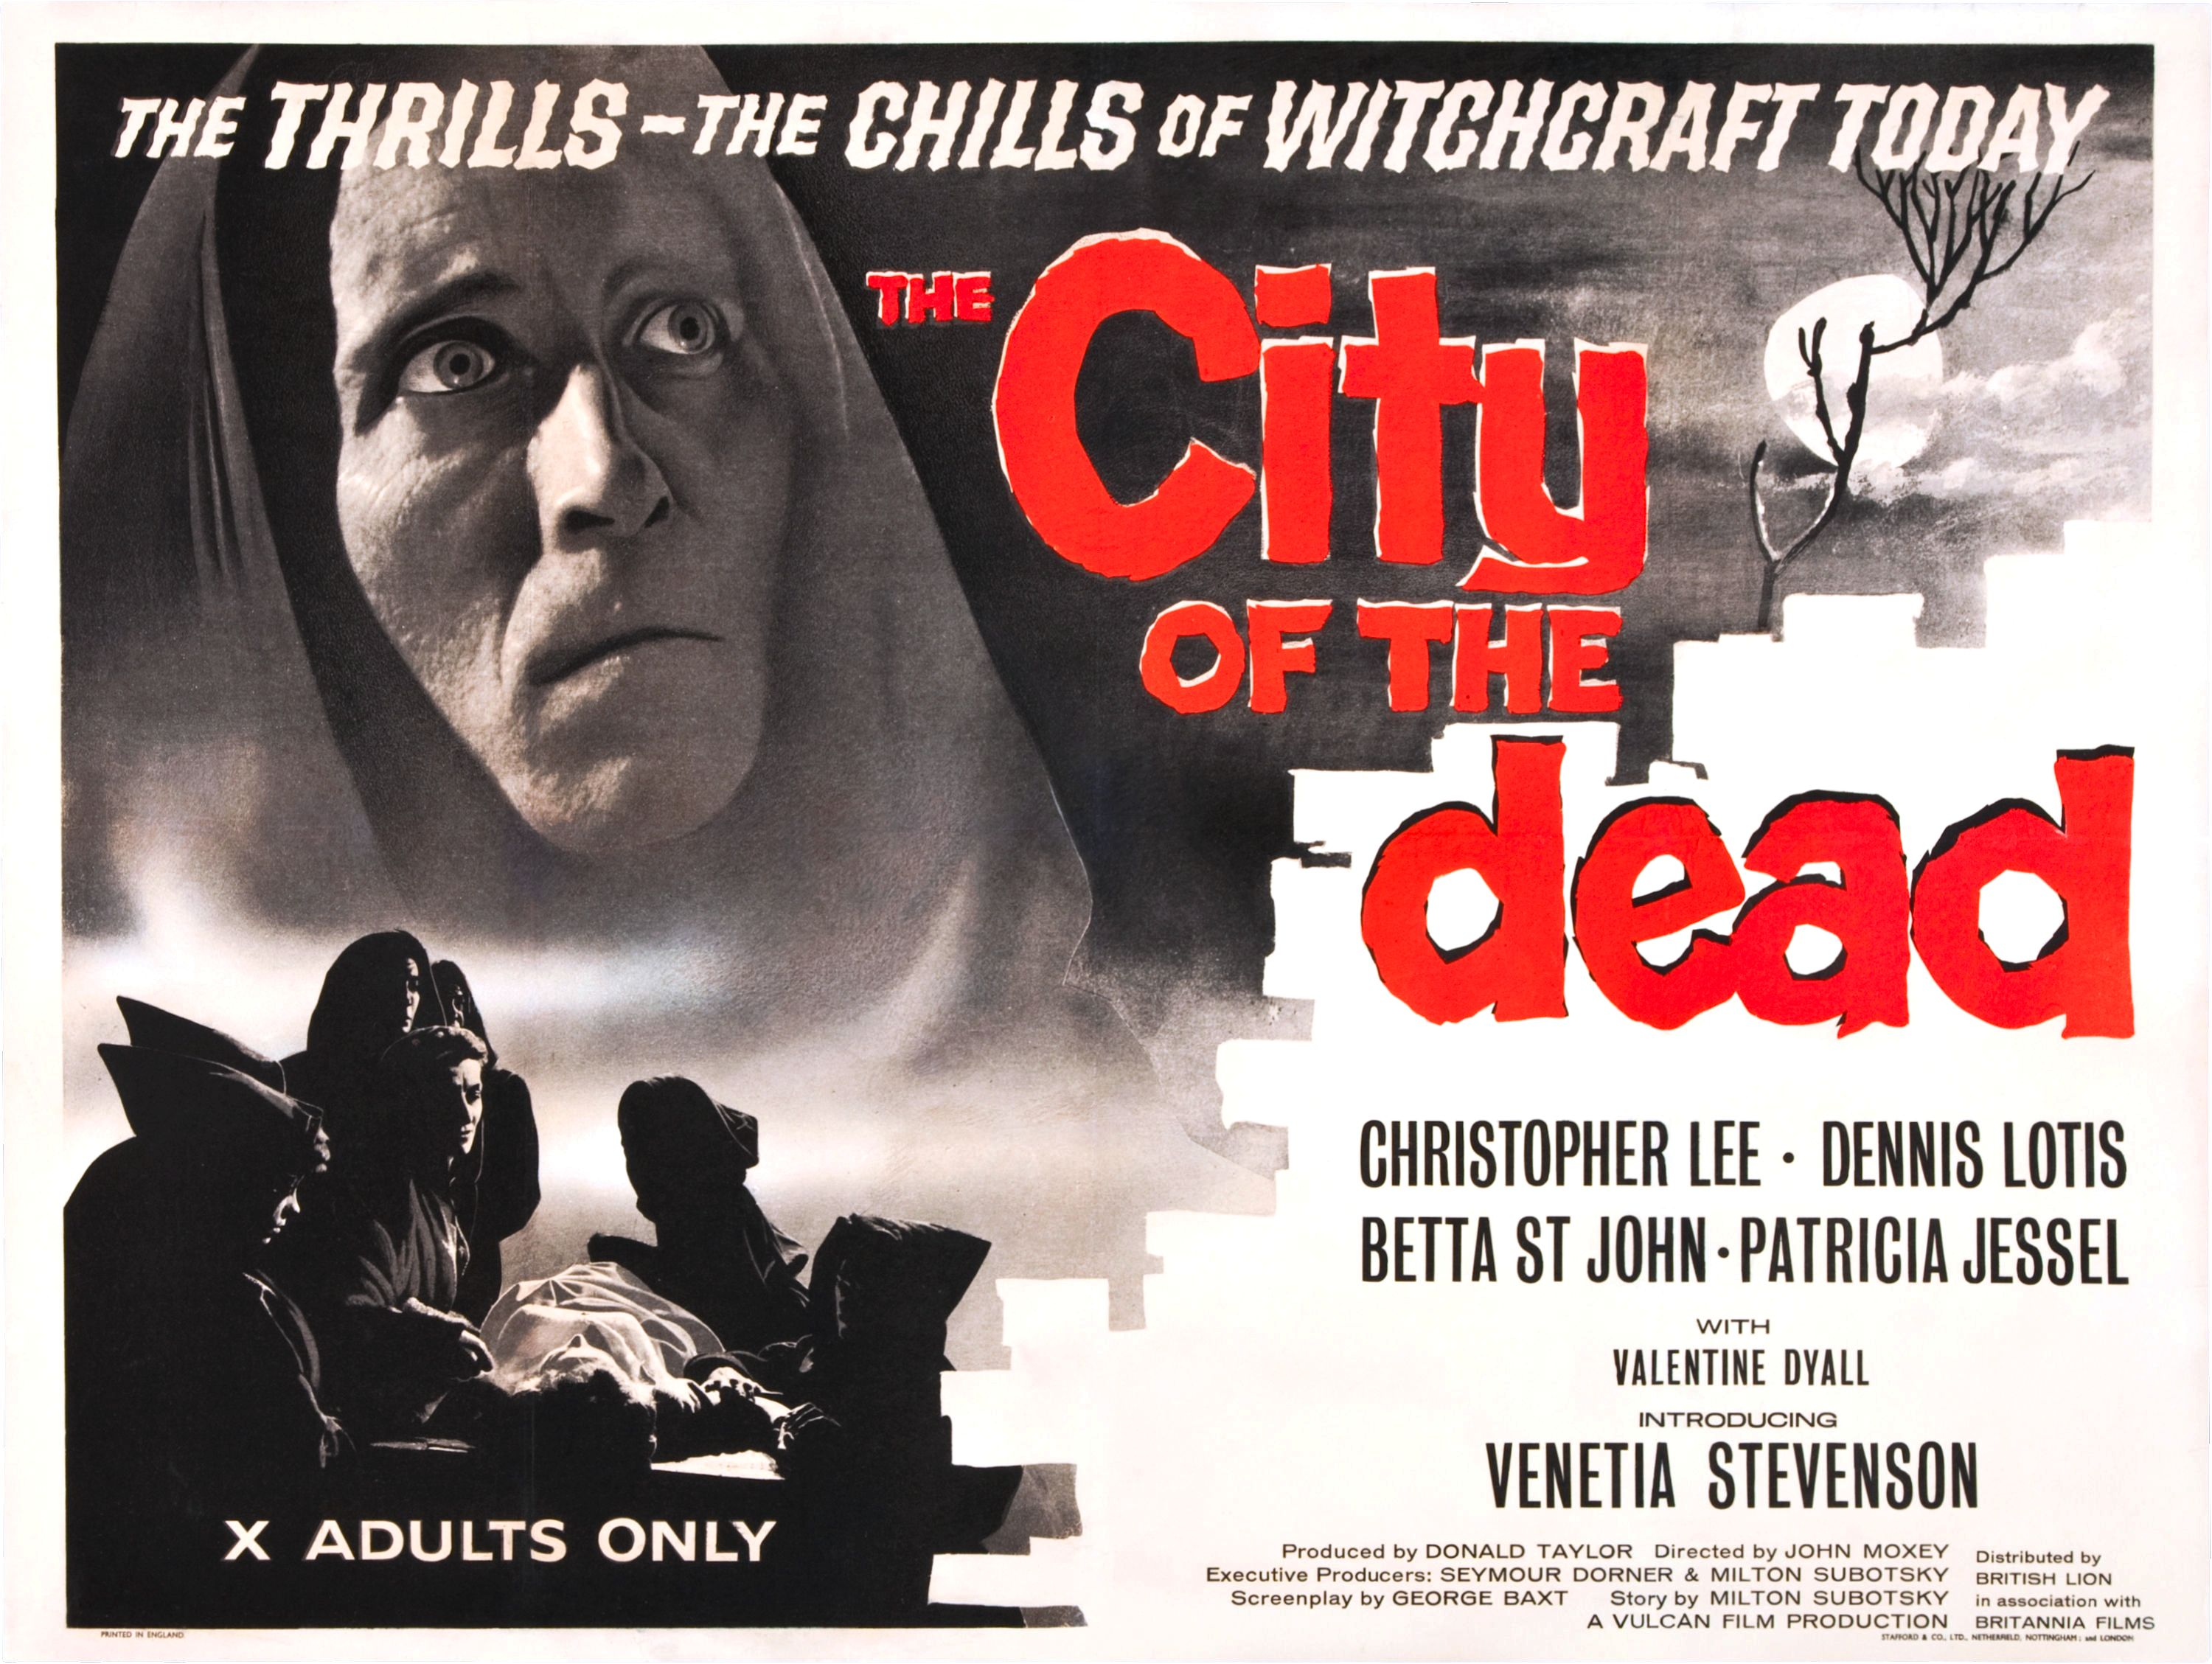 The City of the Dead (1960) - poster